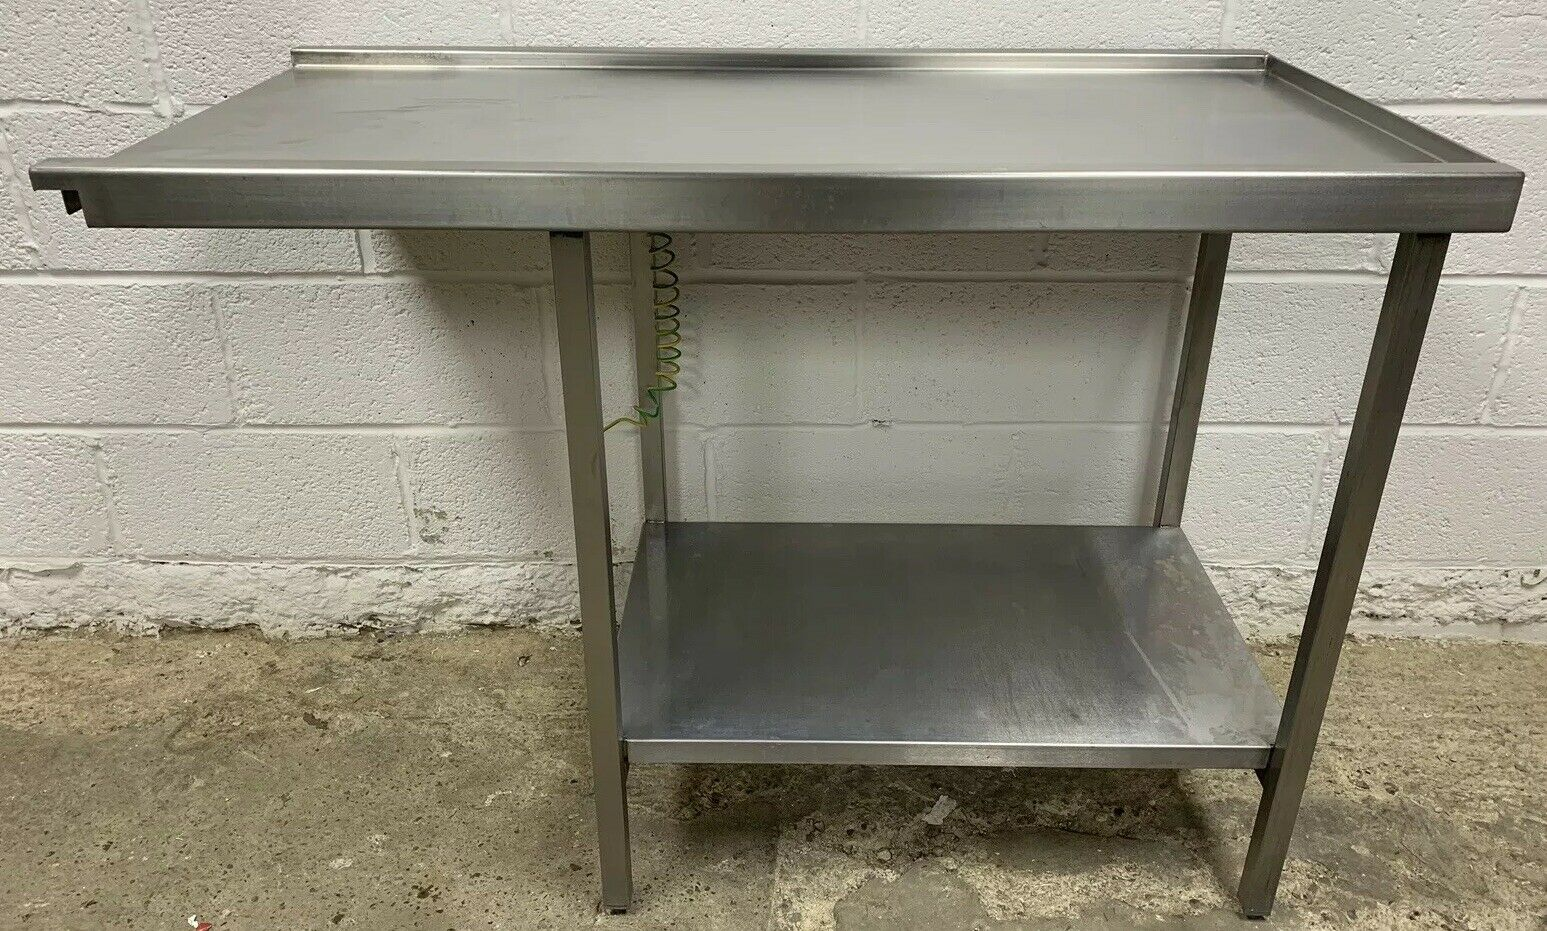 Stainless Steel Dishwasher Outlet / Exit Table